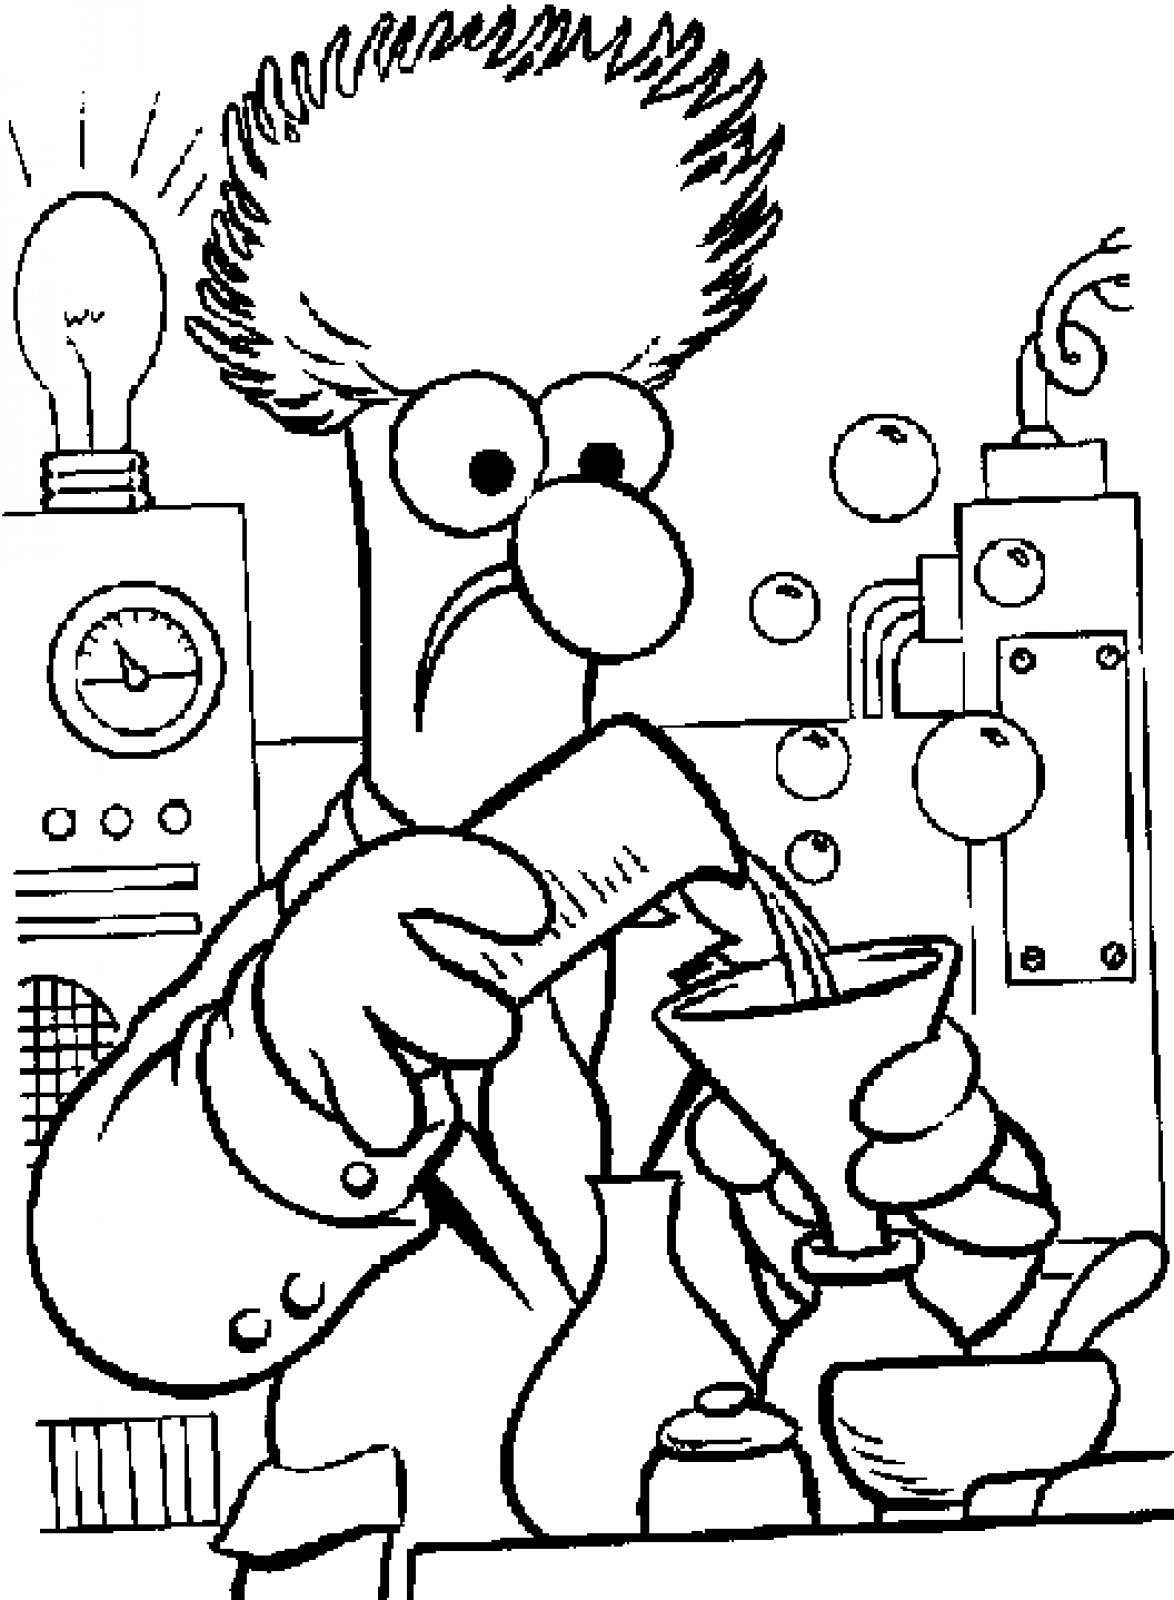 science coloring sheet science lab equipment coloring pages at getdrawings free science coloring sheet